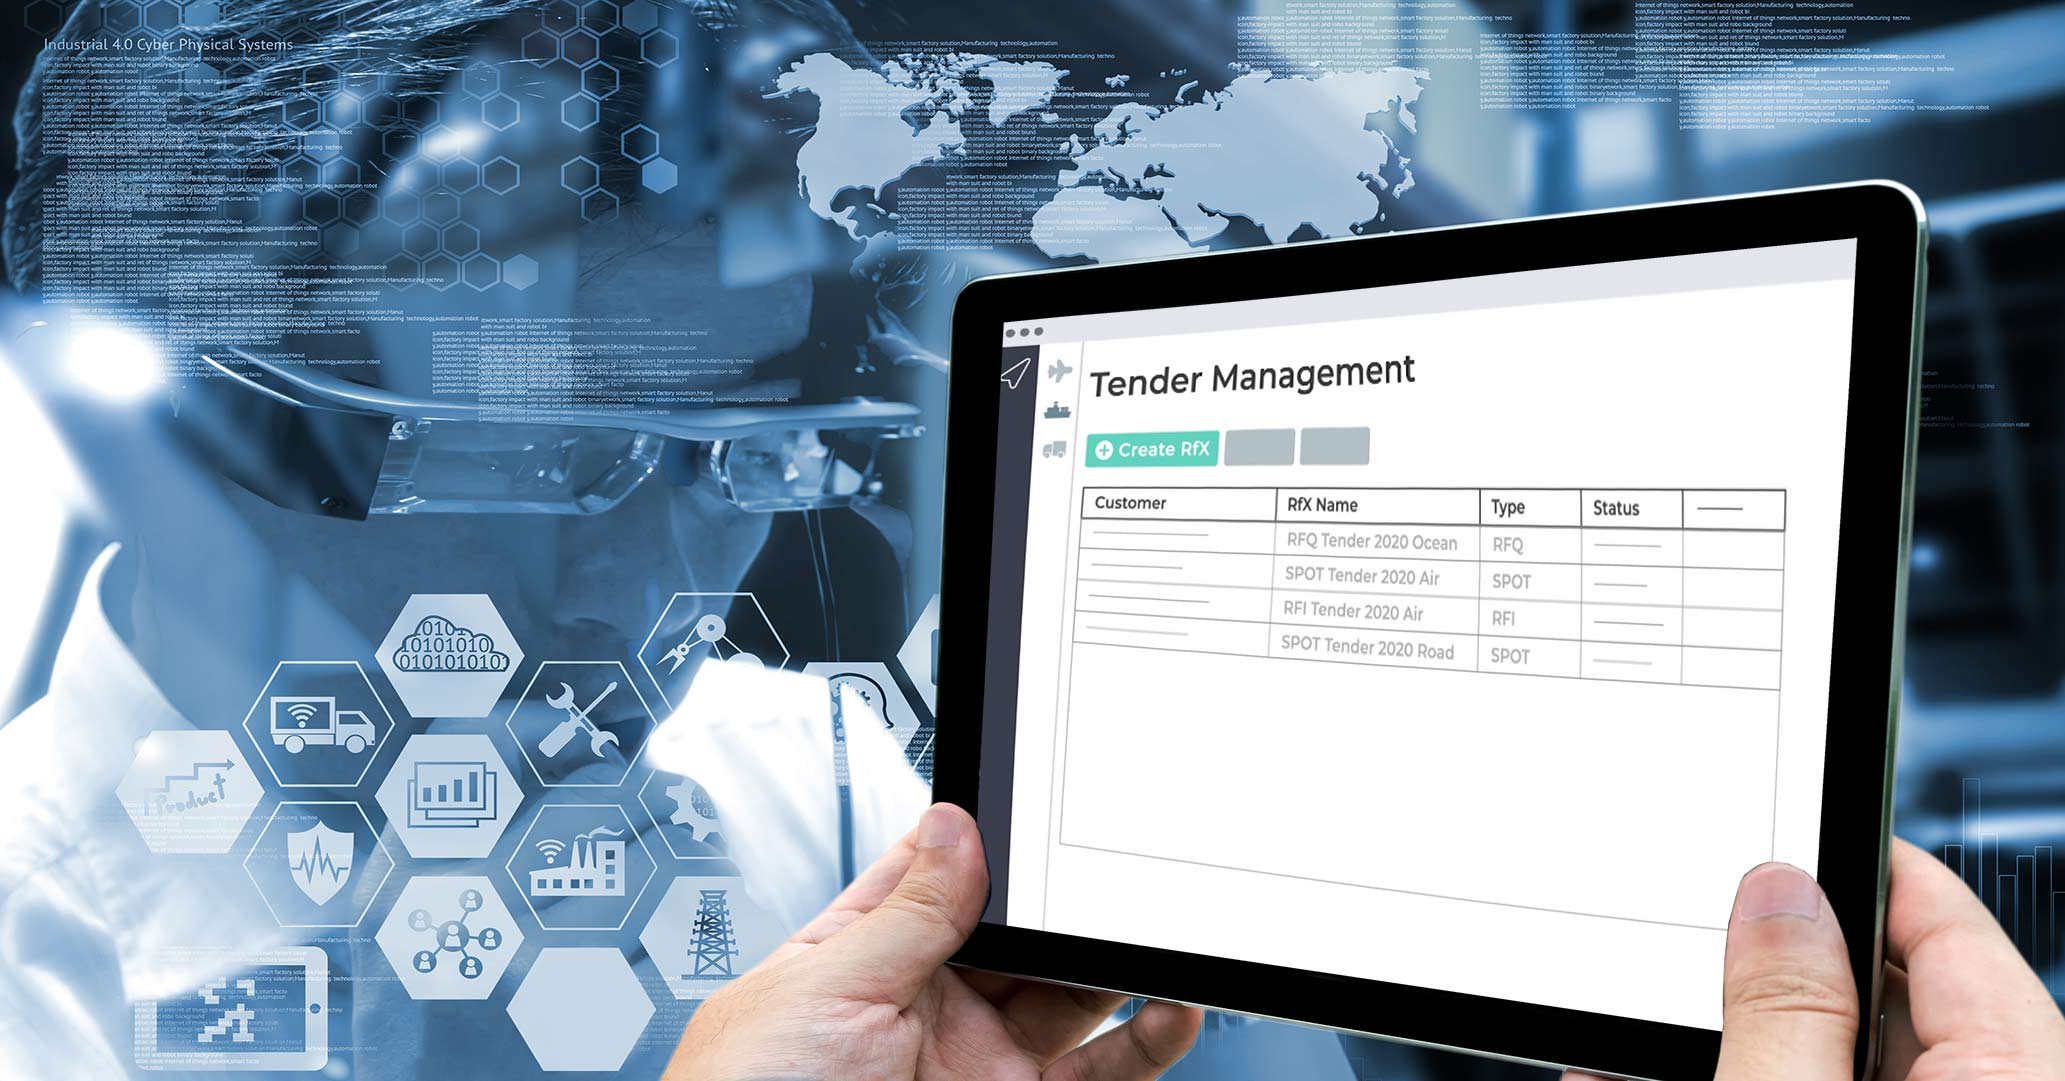 digitization-in-tender-management